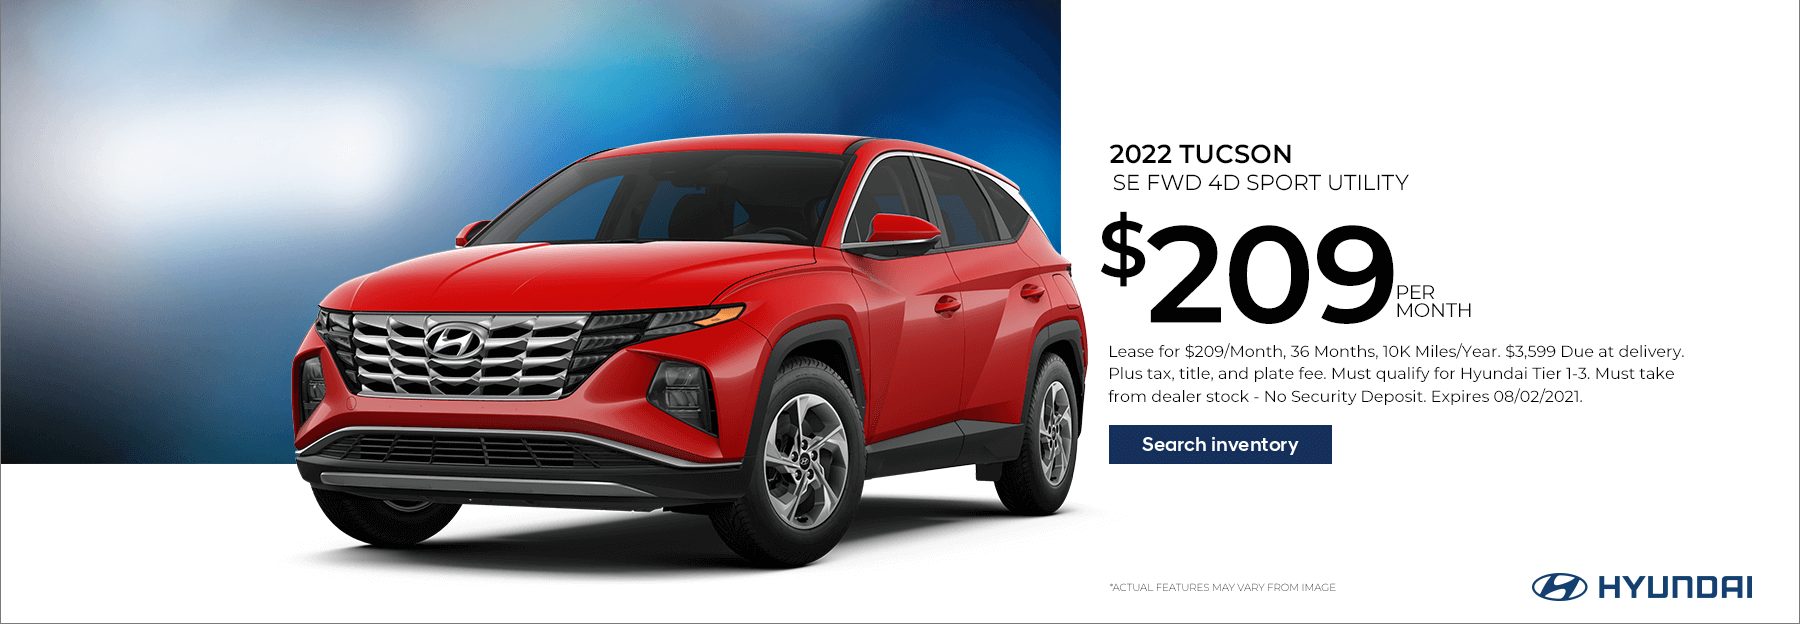 Lease a New 2022 Tucson SE for $209/Month for 36 Months